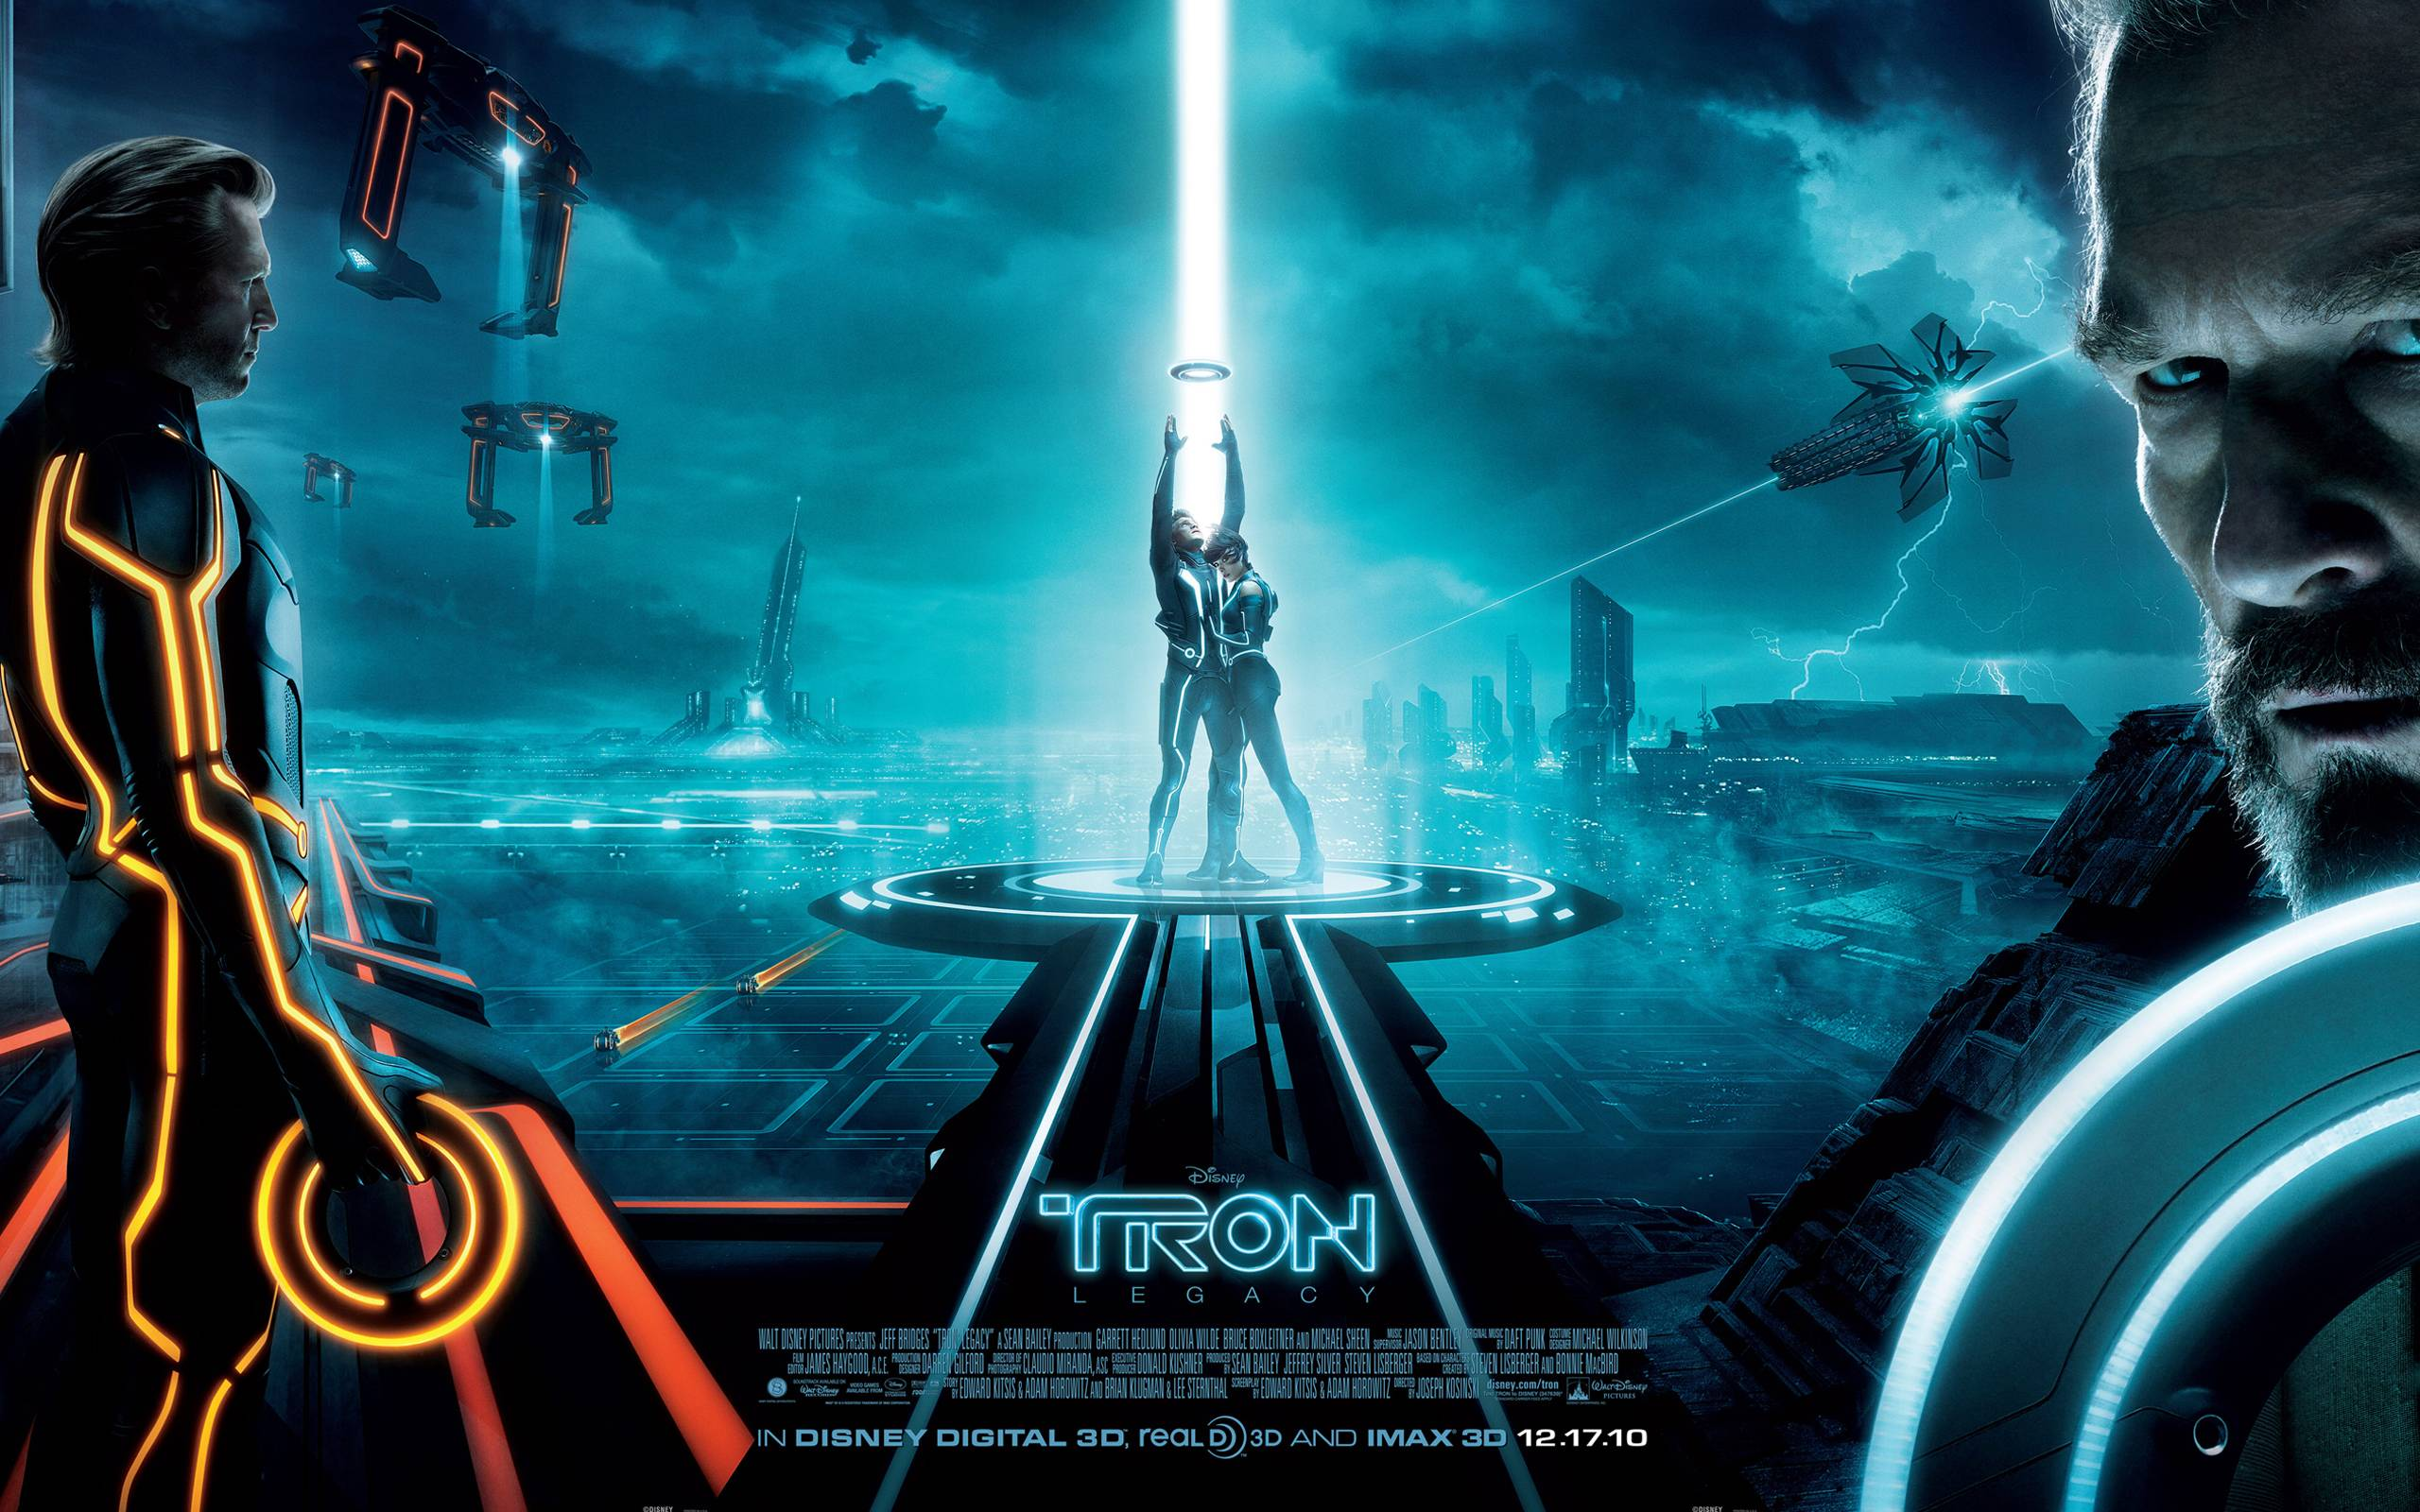 awesome tronlegacy wallpapers - photo #31